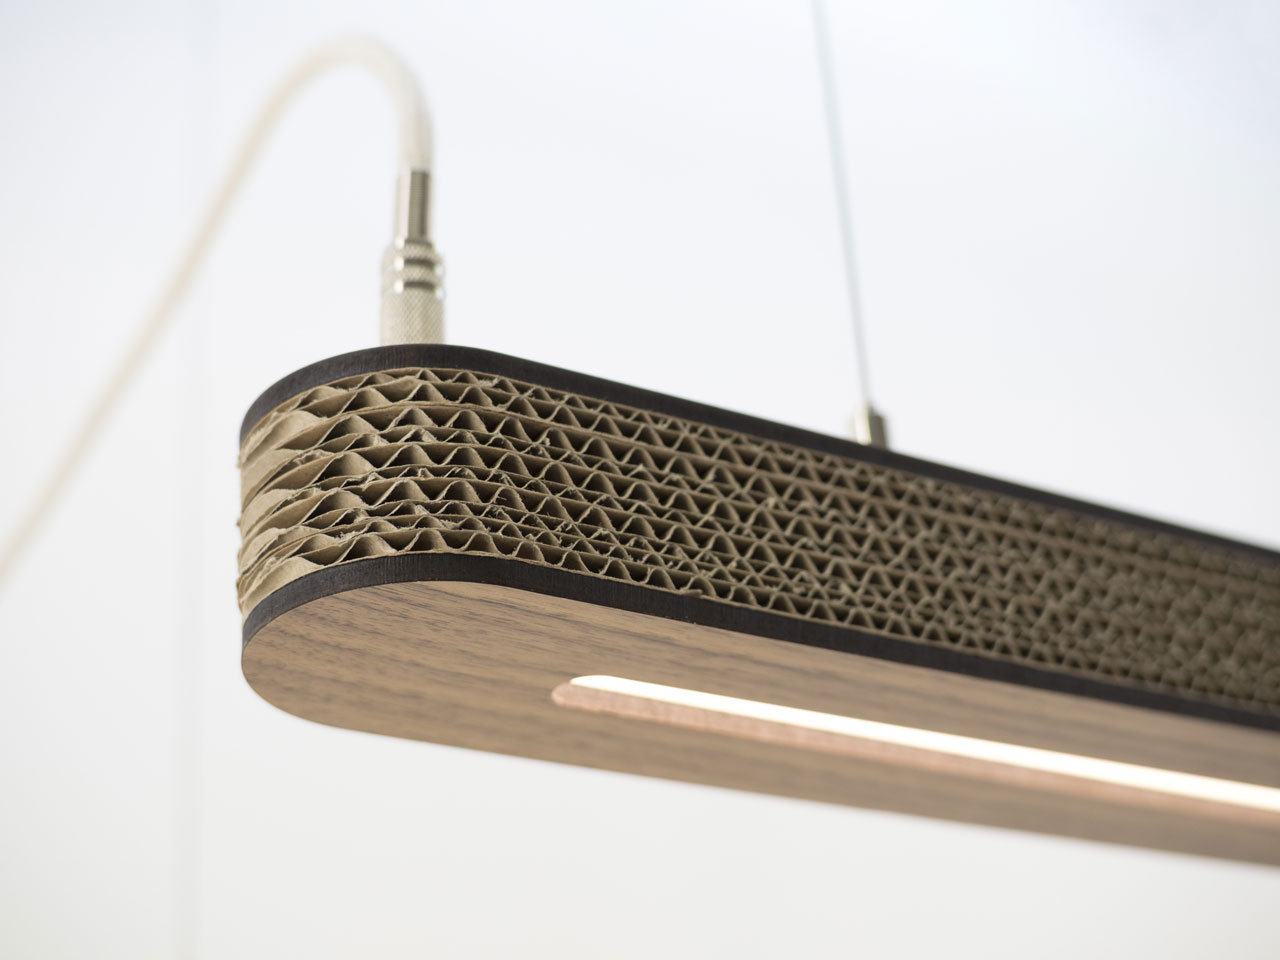 Cartoni 900: Lightweight LED-light in cardboard by Wisse Trooster for Cartoni Design.